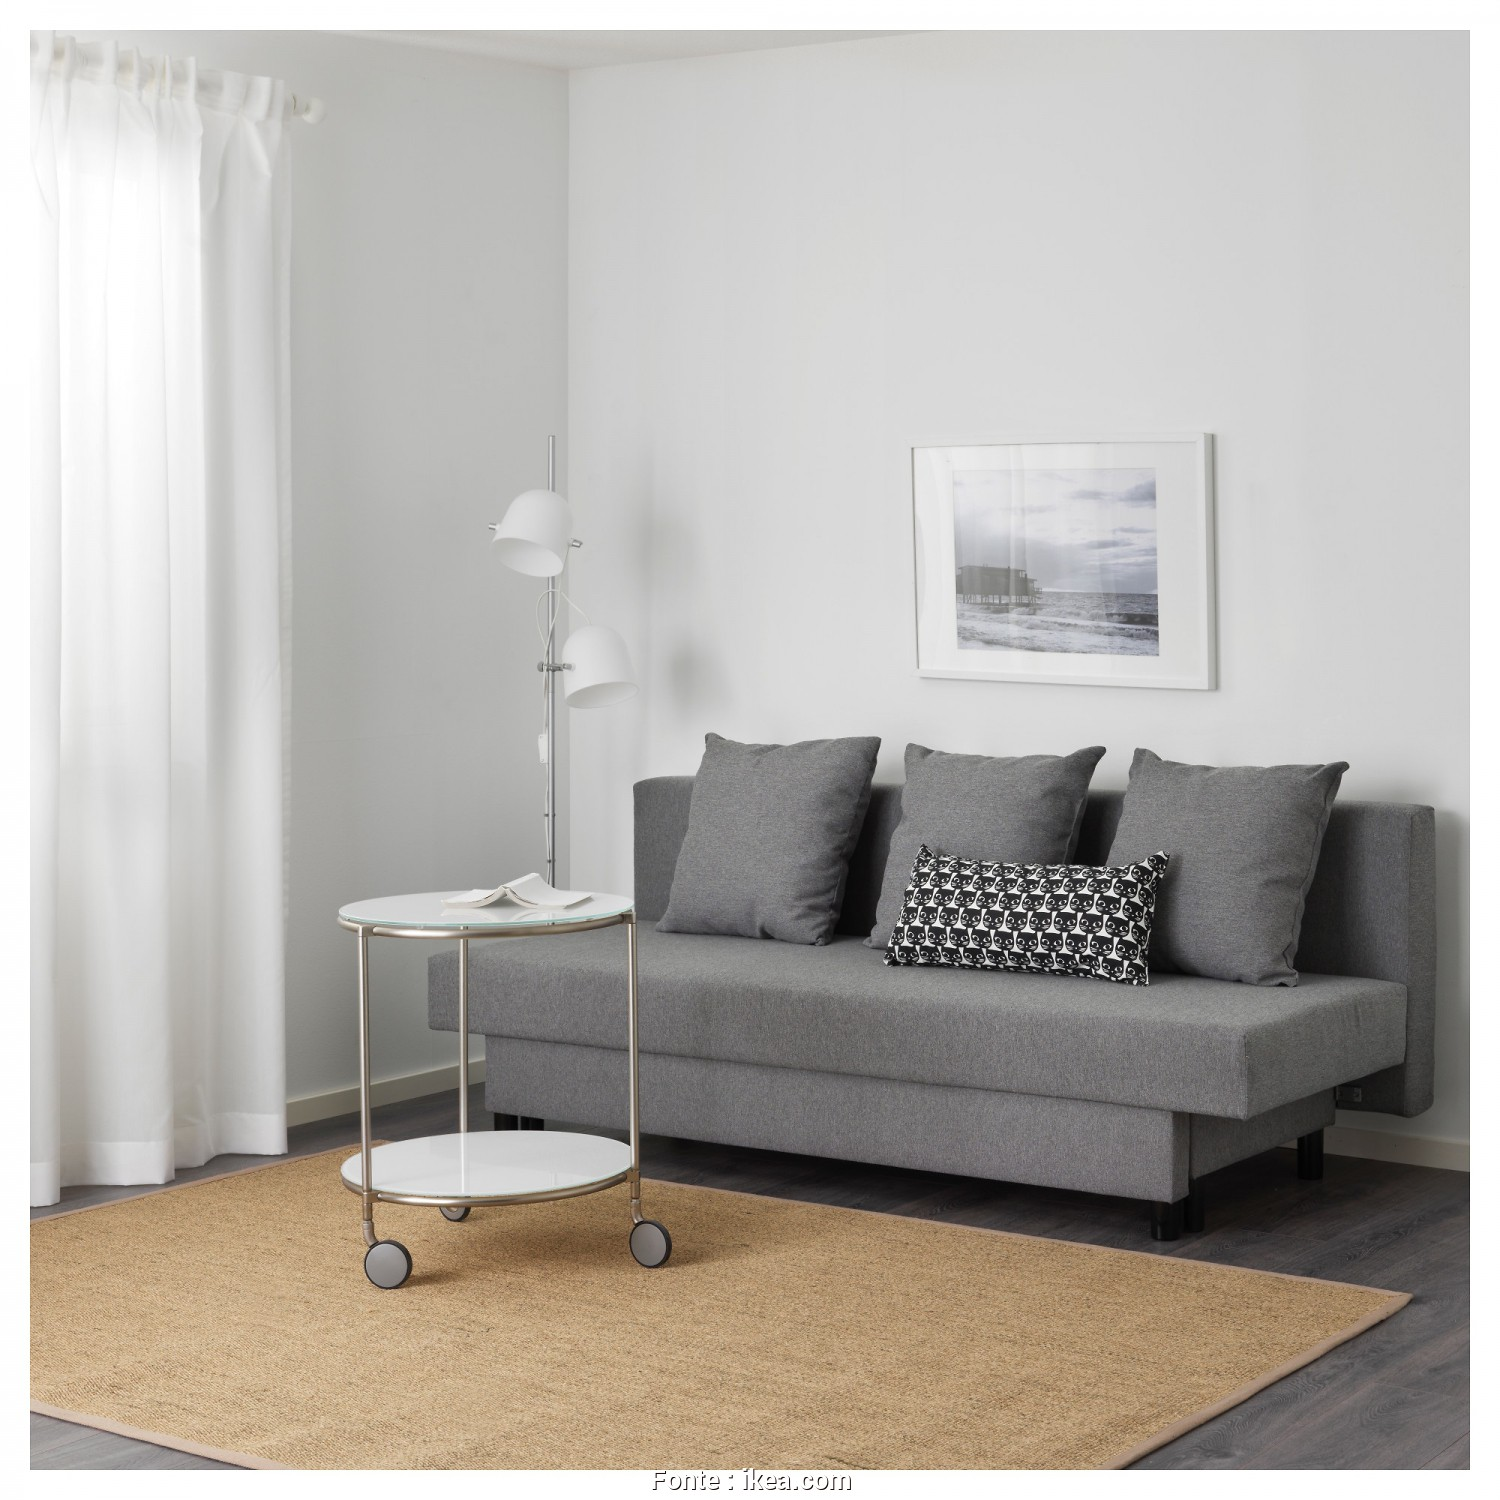 Ikea Asarum Assembly, Delizioso ASARUM Three-Seat Sofa-Bed, Grey